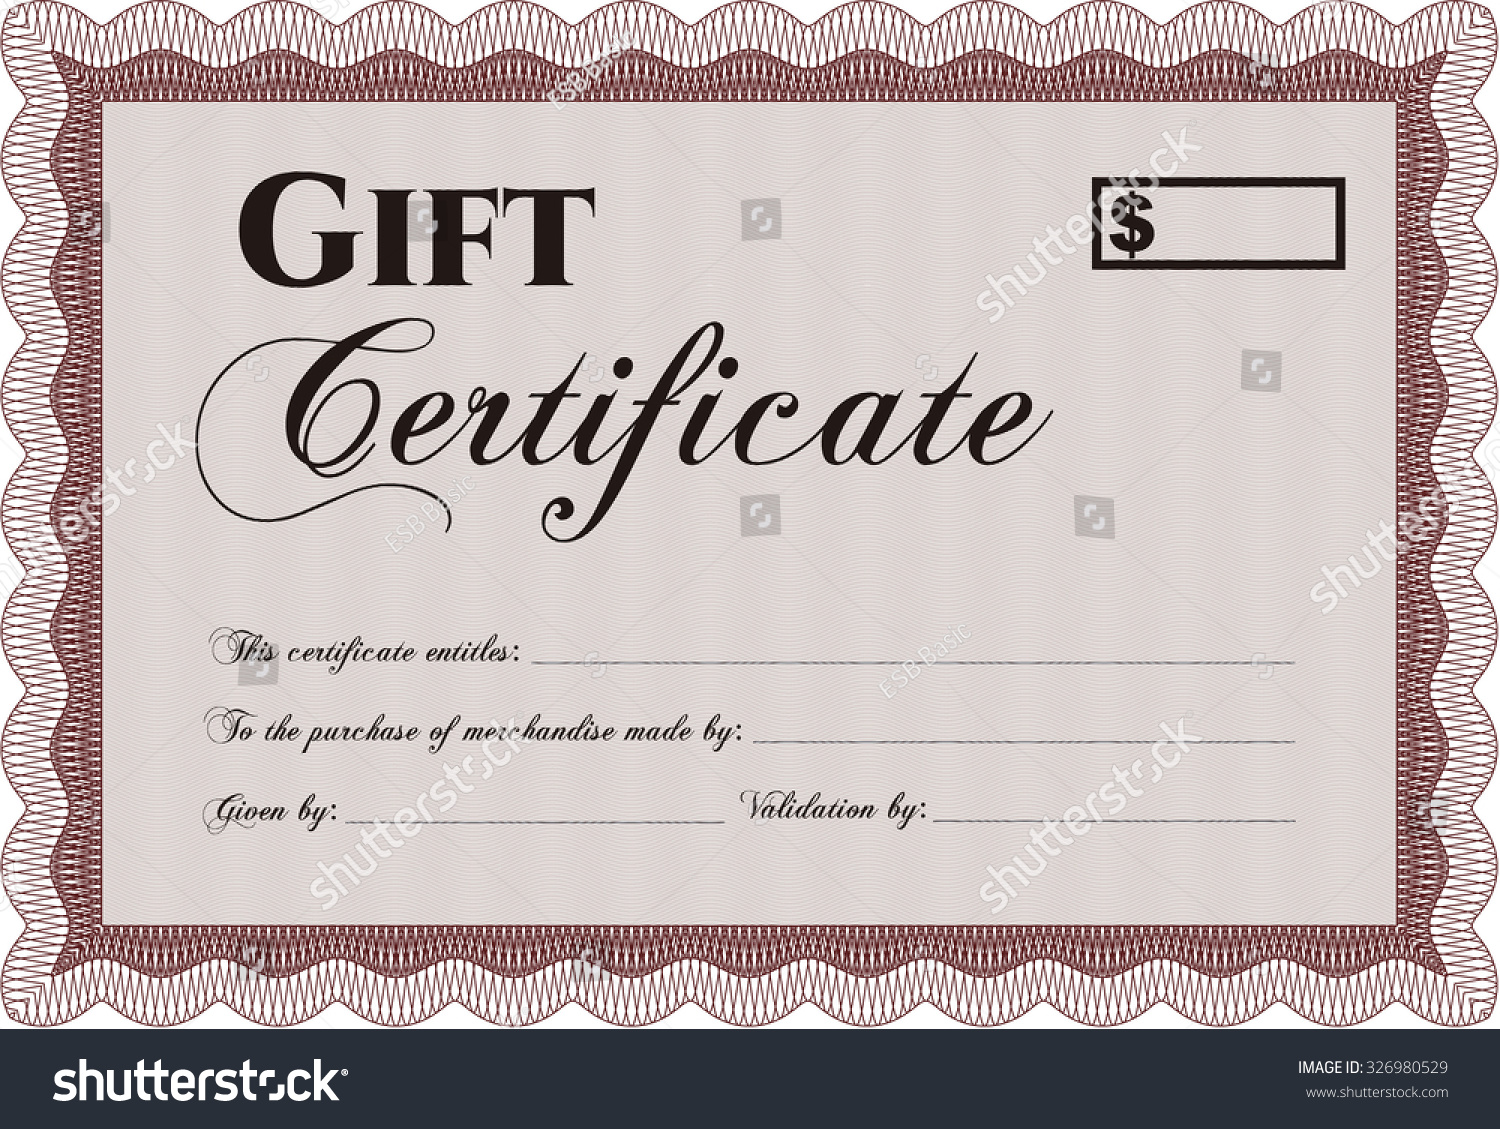 Gift Certificate Template Easy Print Customizable Stock Vector